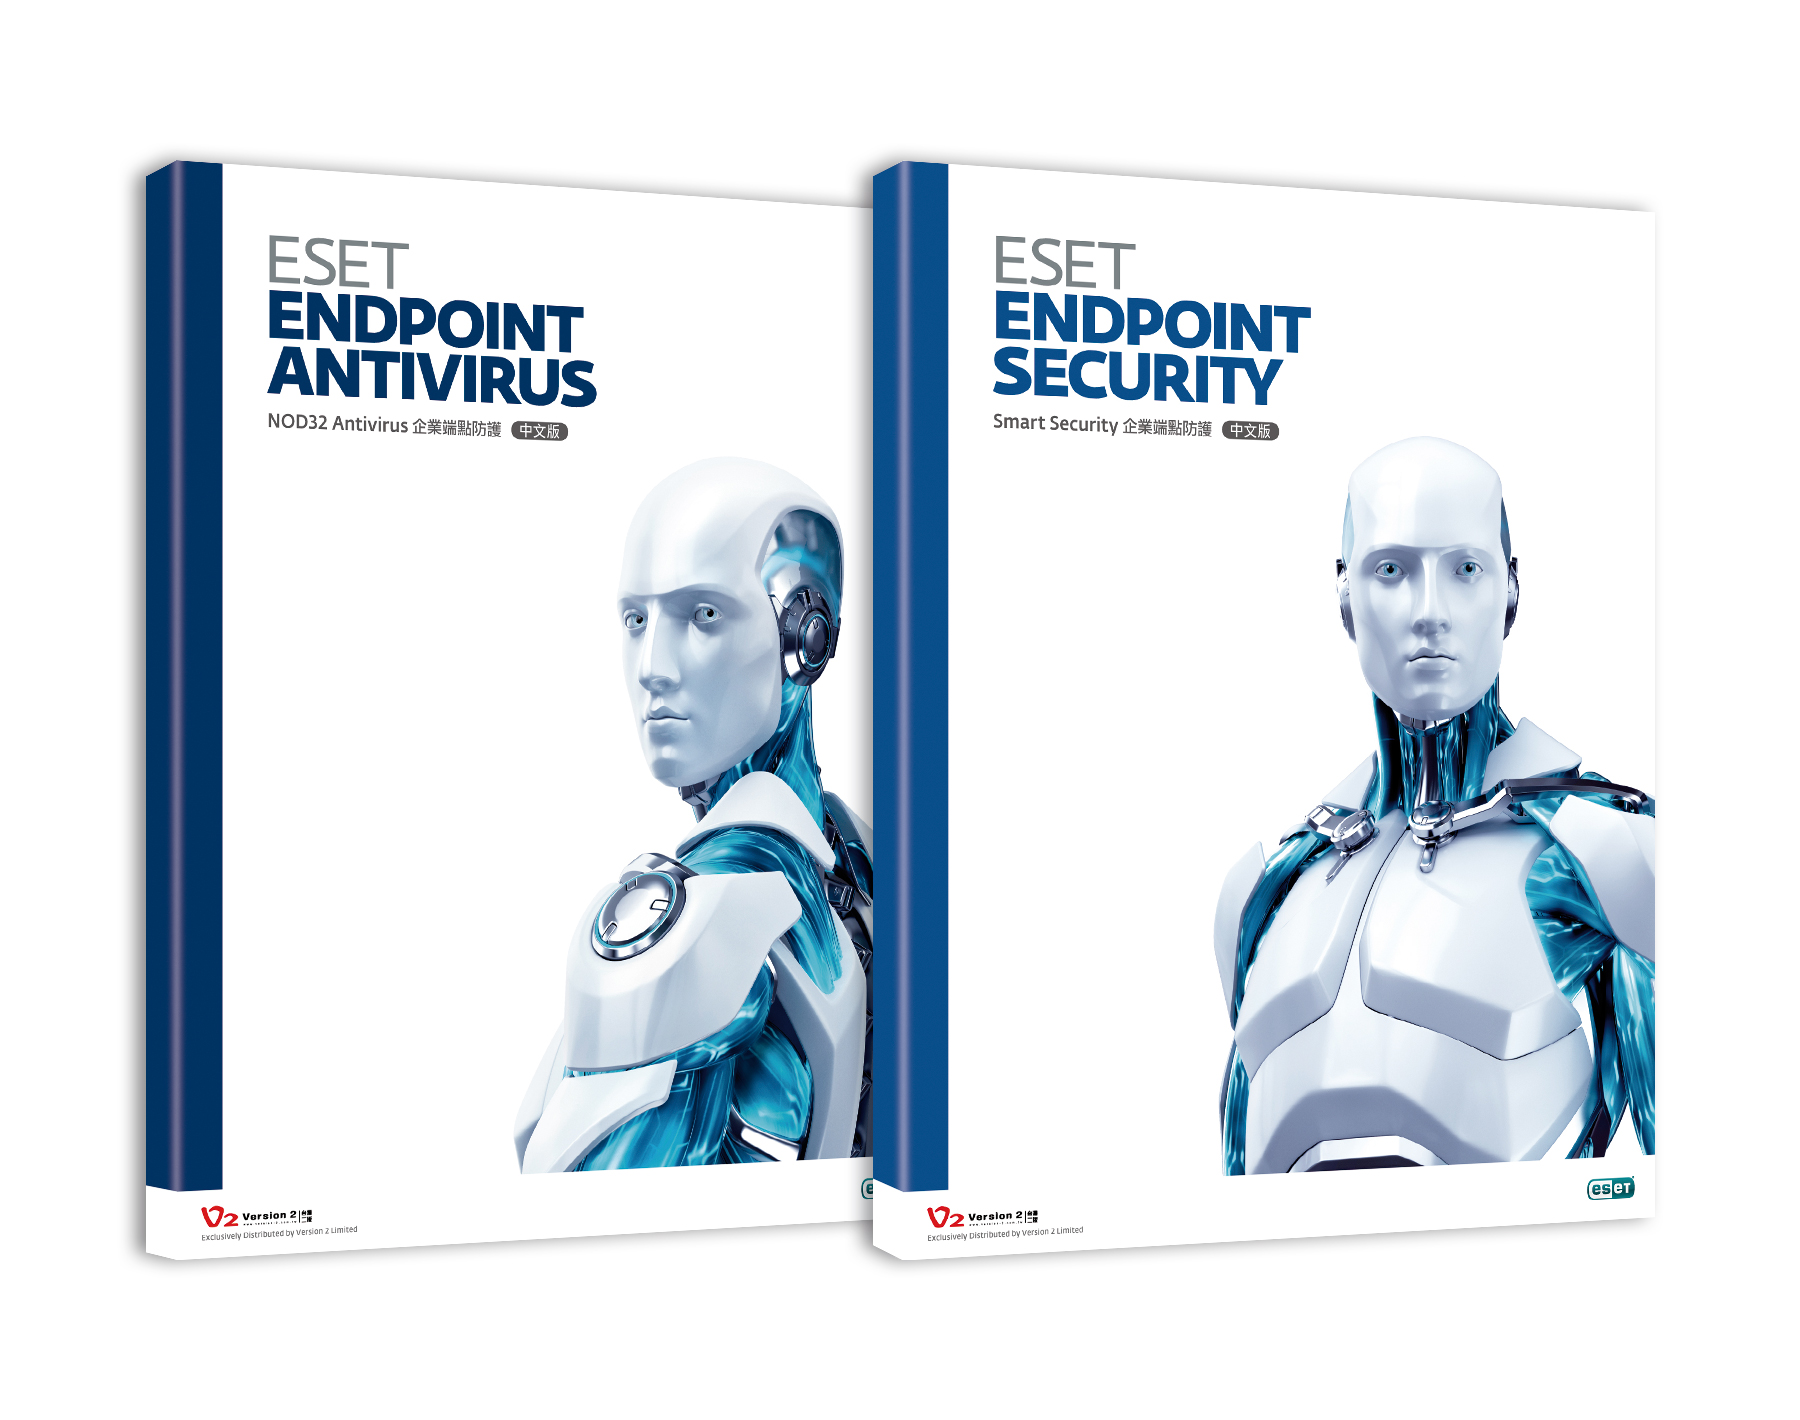 عملاق الحماية ESET Endpoint Antivirus Final Endpoint Security 5.0.2228.1 Final,بوابة 2013 Endpoint_3D-Box.jpg